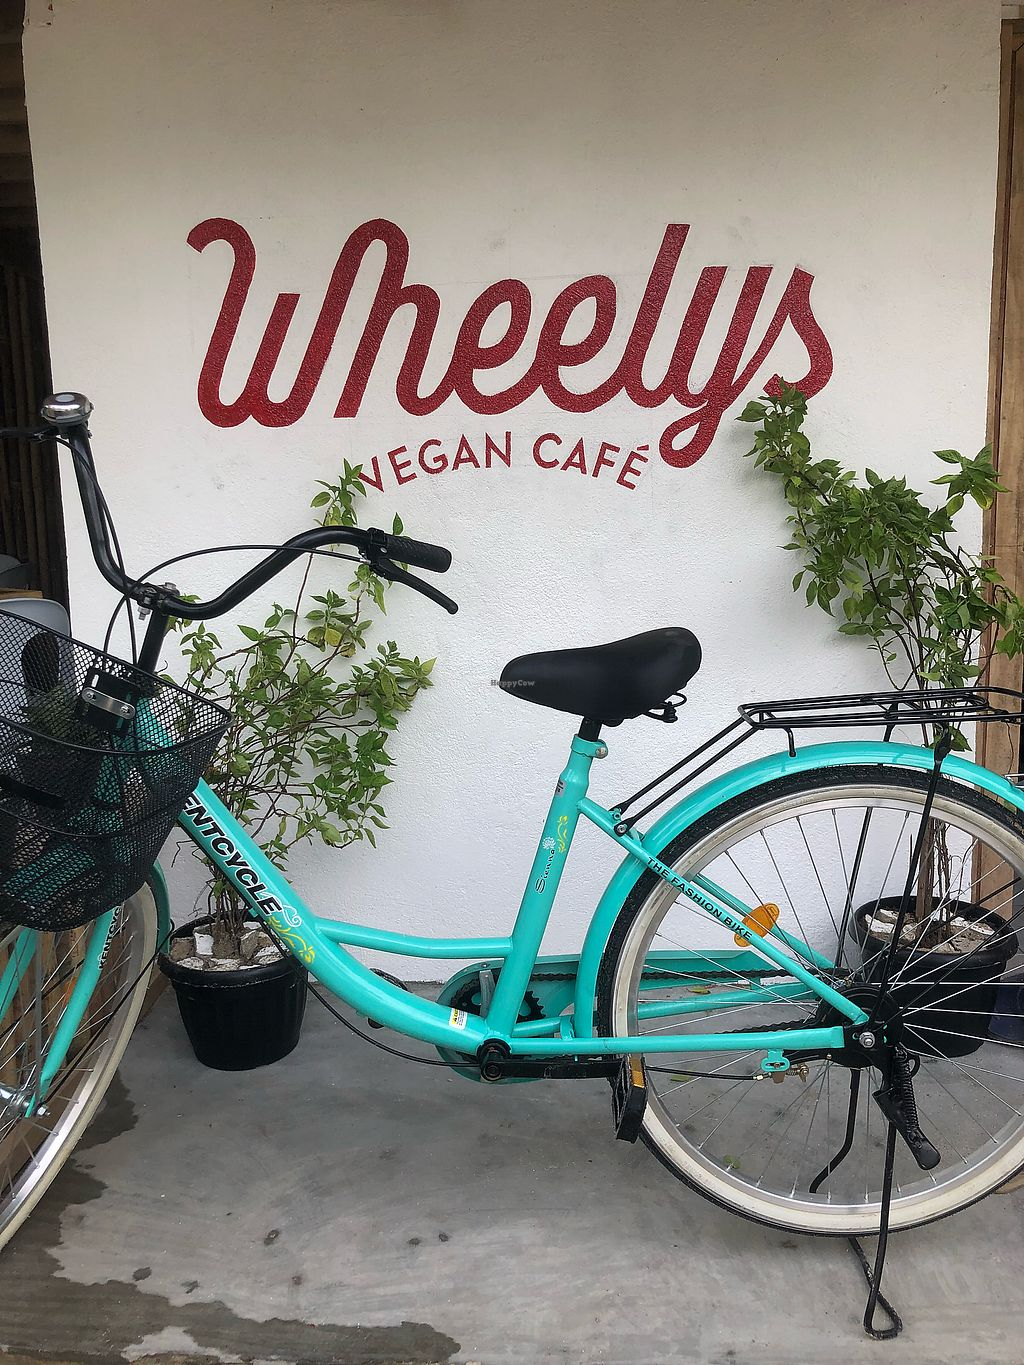 """Photo of Wheelys Cafe  by <a href=""""/members/profile/gzelbautista"""">gzelbautista</a> <br/>Wheelys Cafe <br/> January 28, 2018  - <a href='/contact/abuse/image/110549/351716'>Report</a>"""